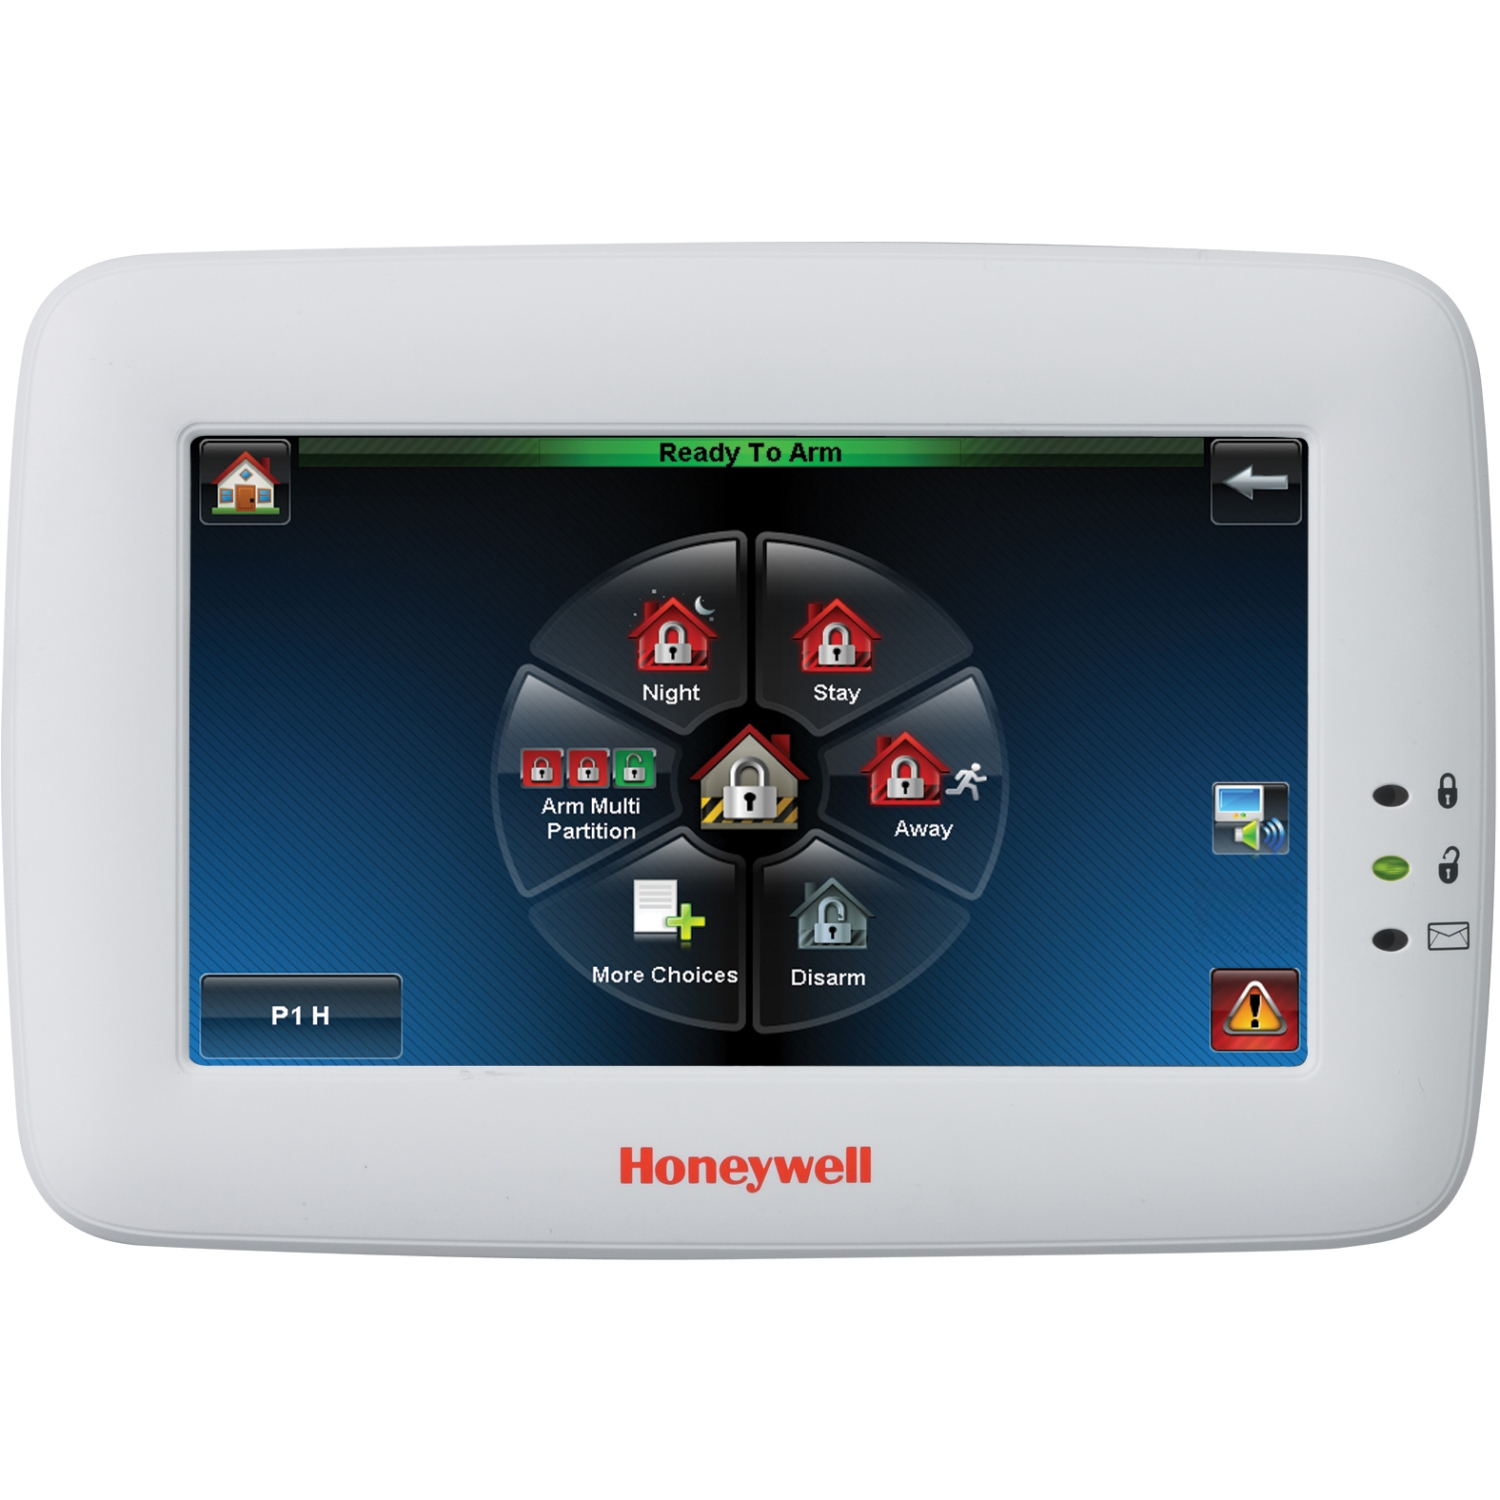 "Honeywell Intrusion 6280W Graphic,7"" Display Keypad,Touch Center - White"